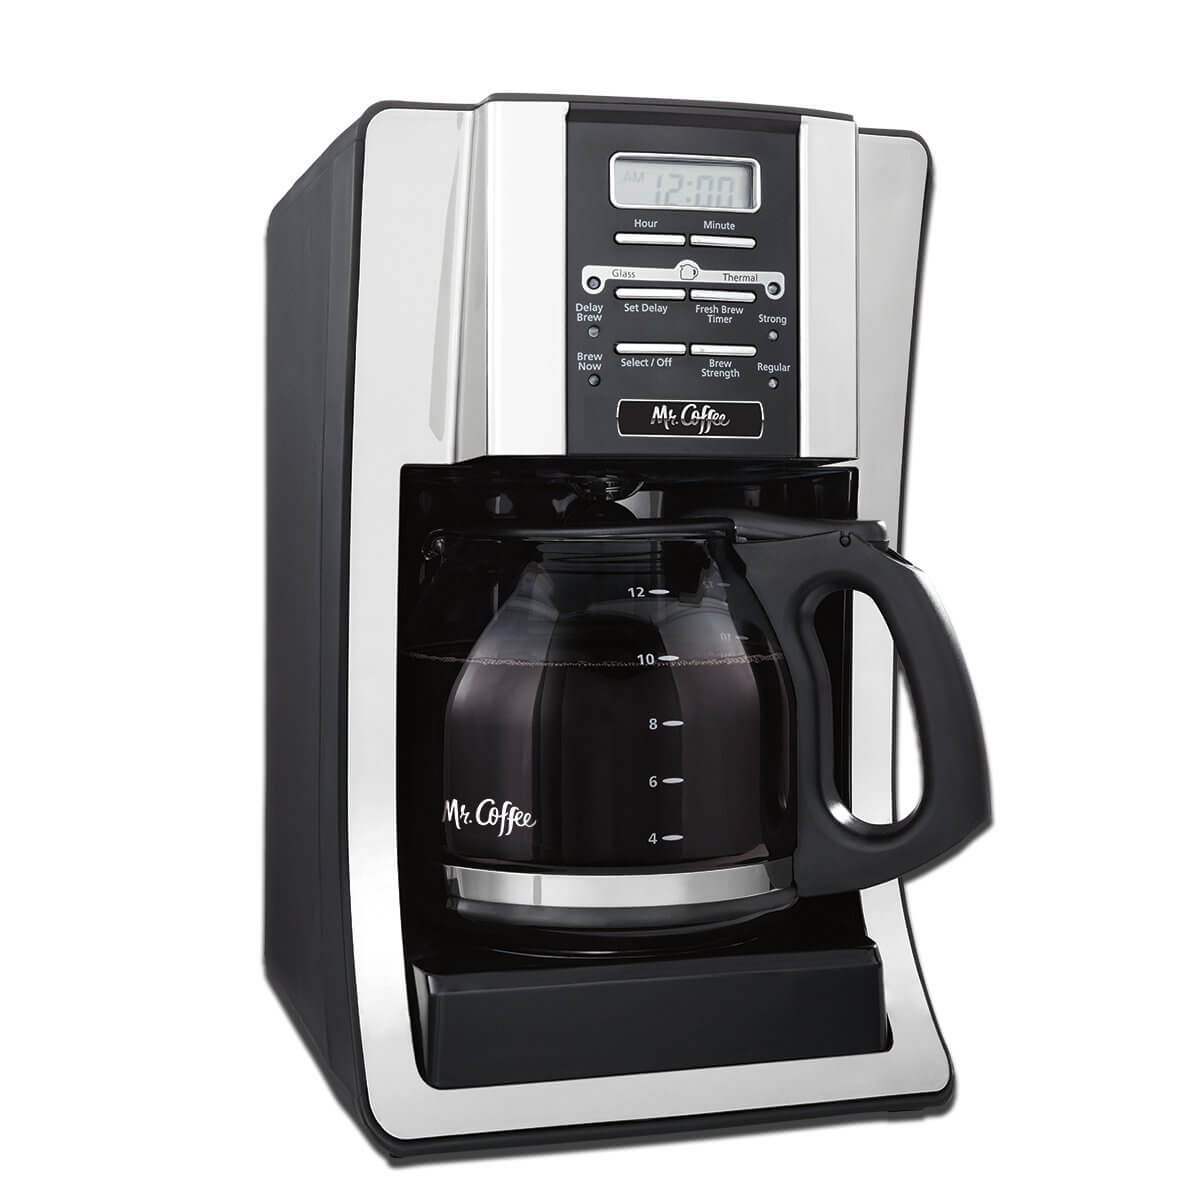 Mr. Coffee 12 Cup Programmable Coffee Maker Review